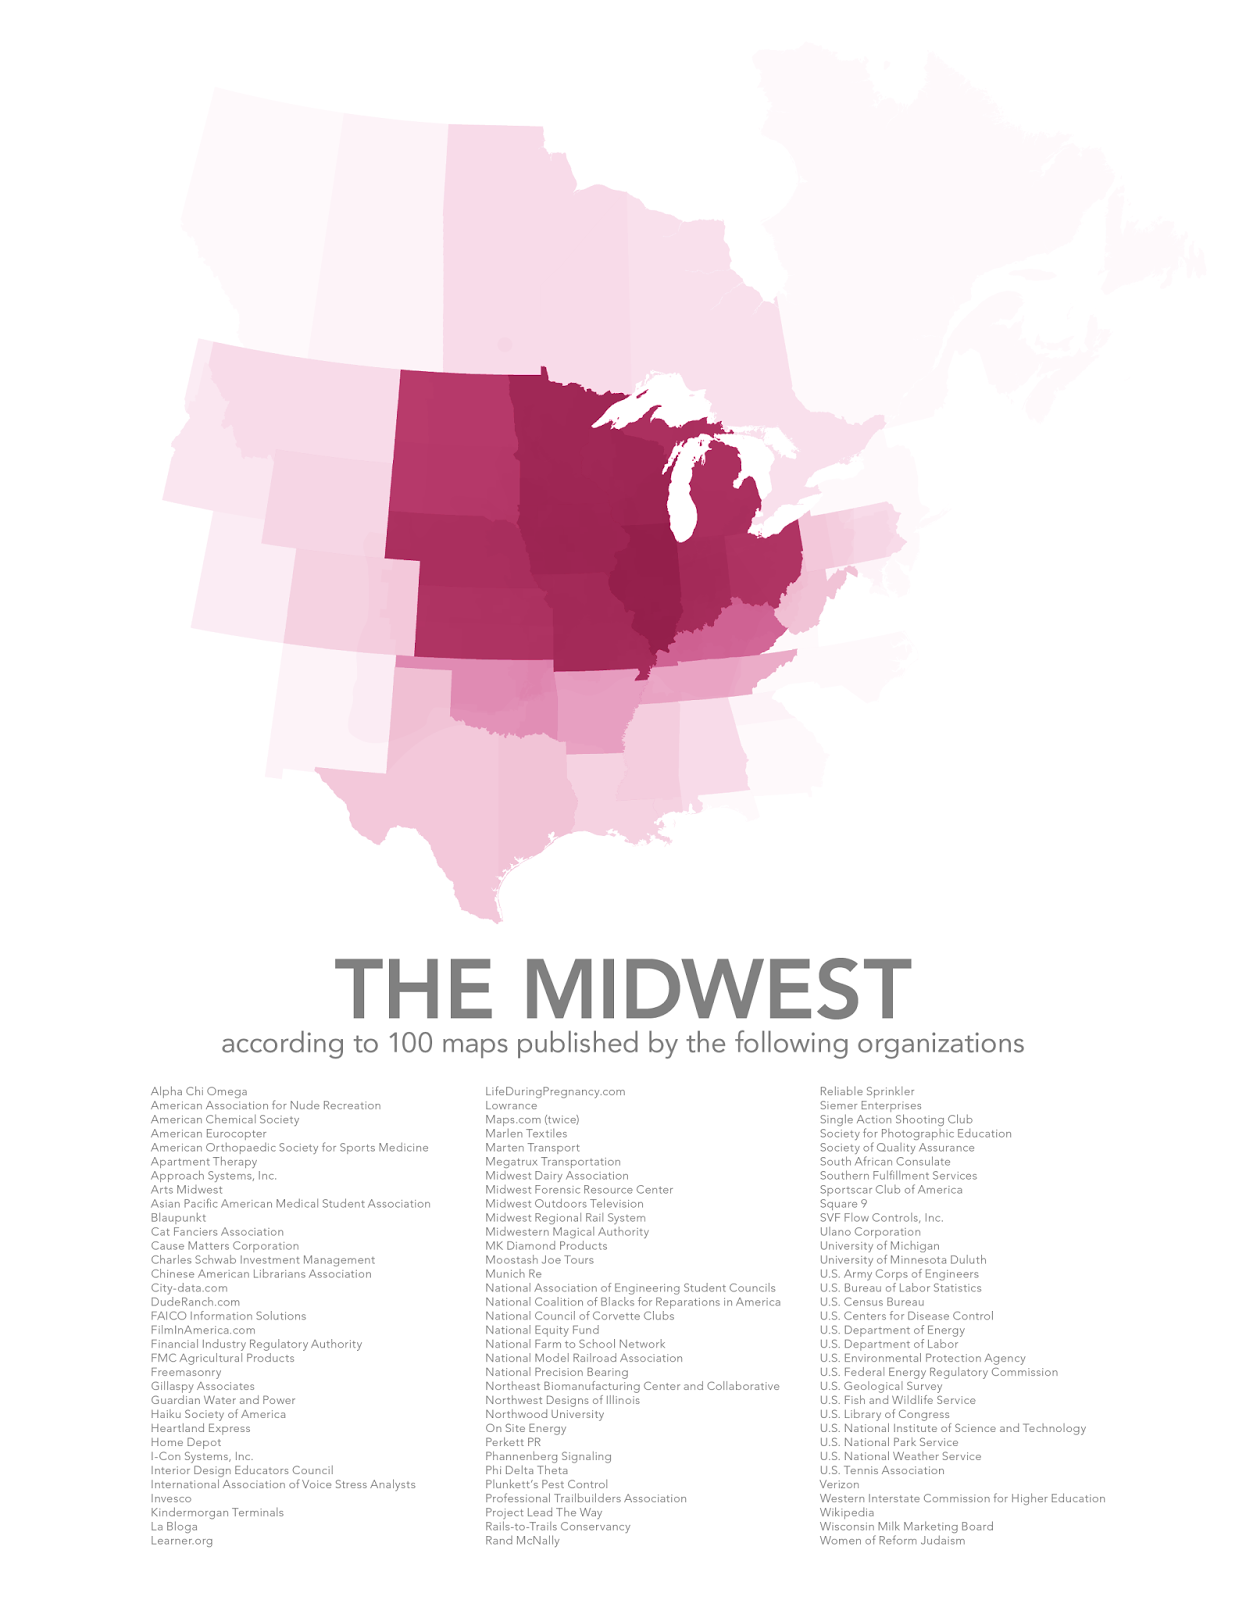 The Midwest, according to 100 maps published by the following organizations